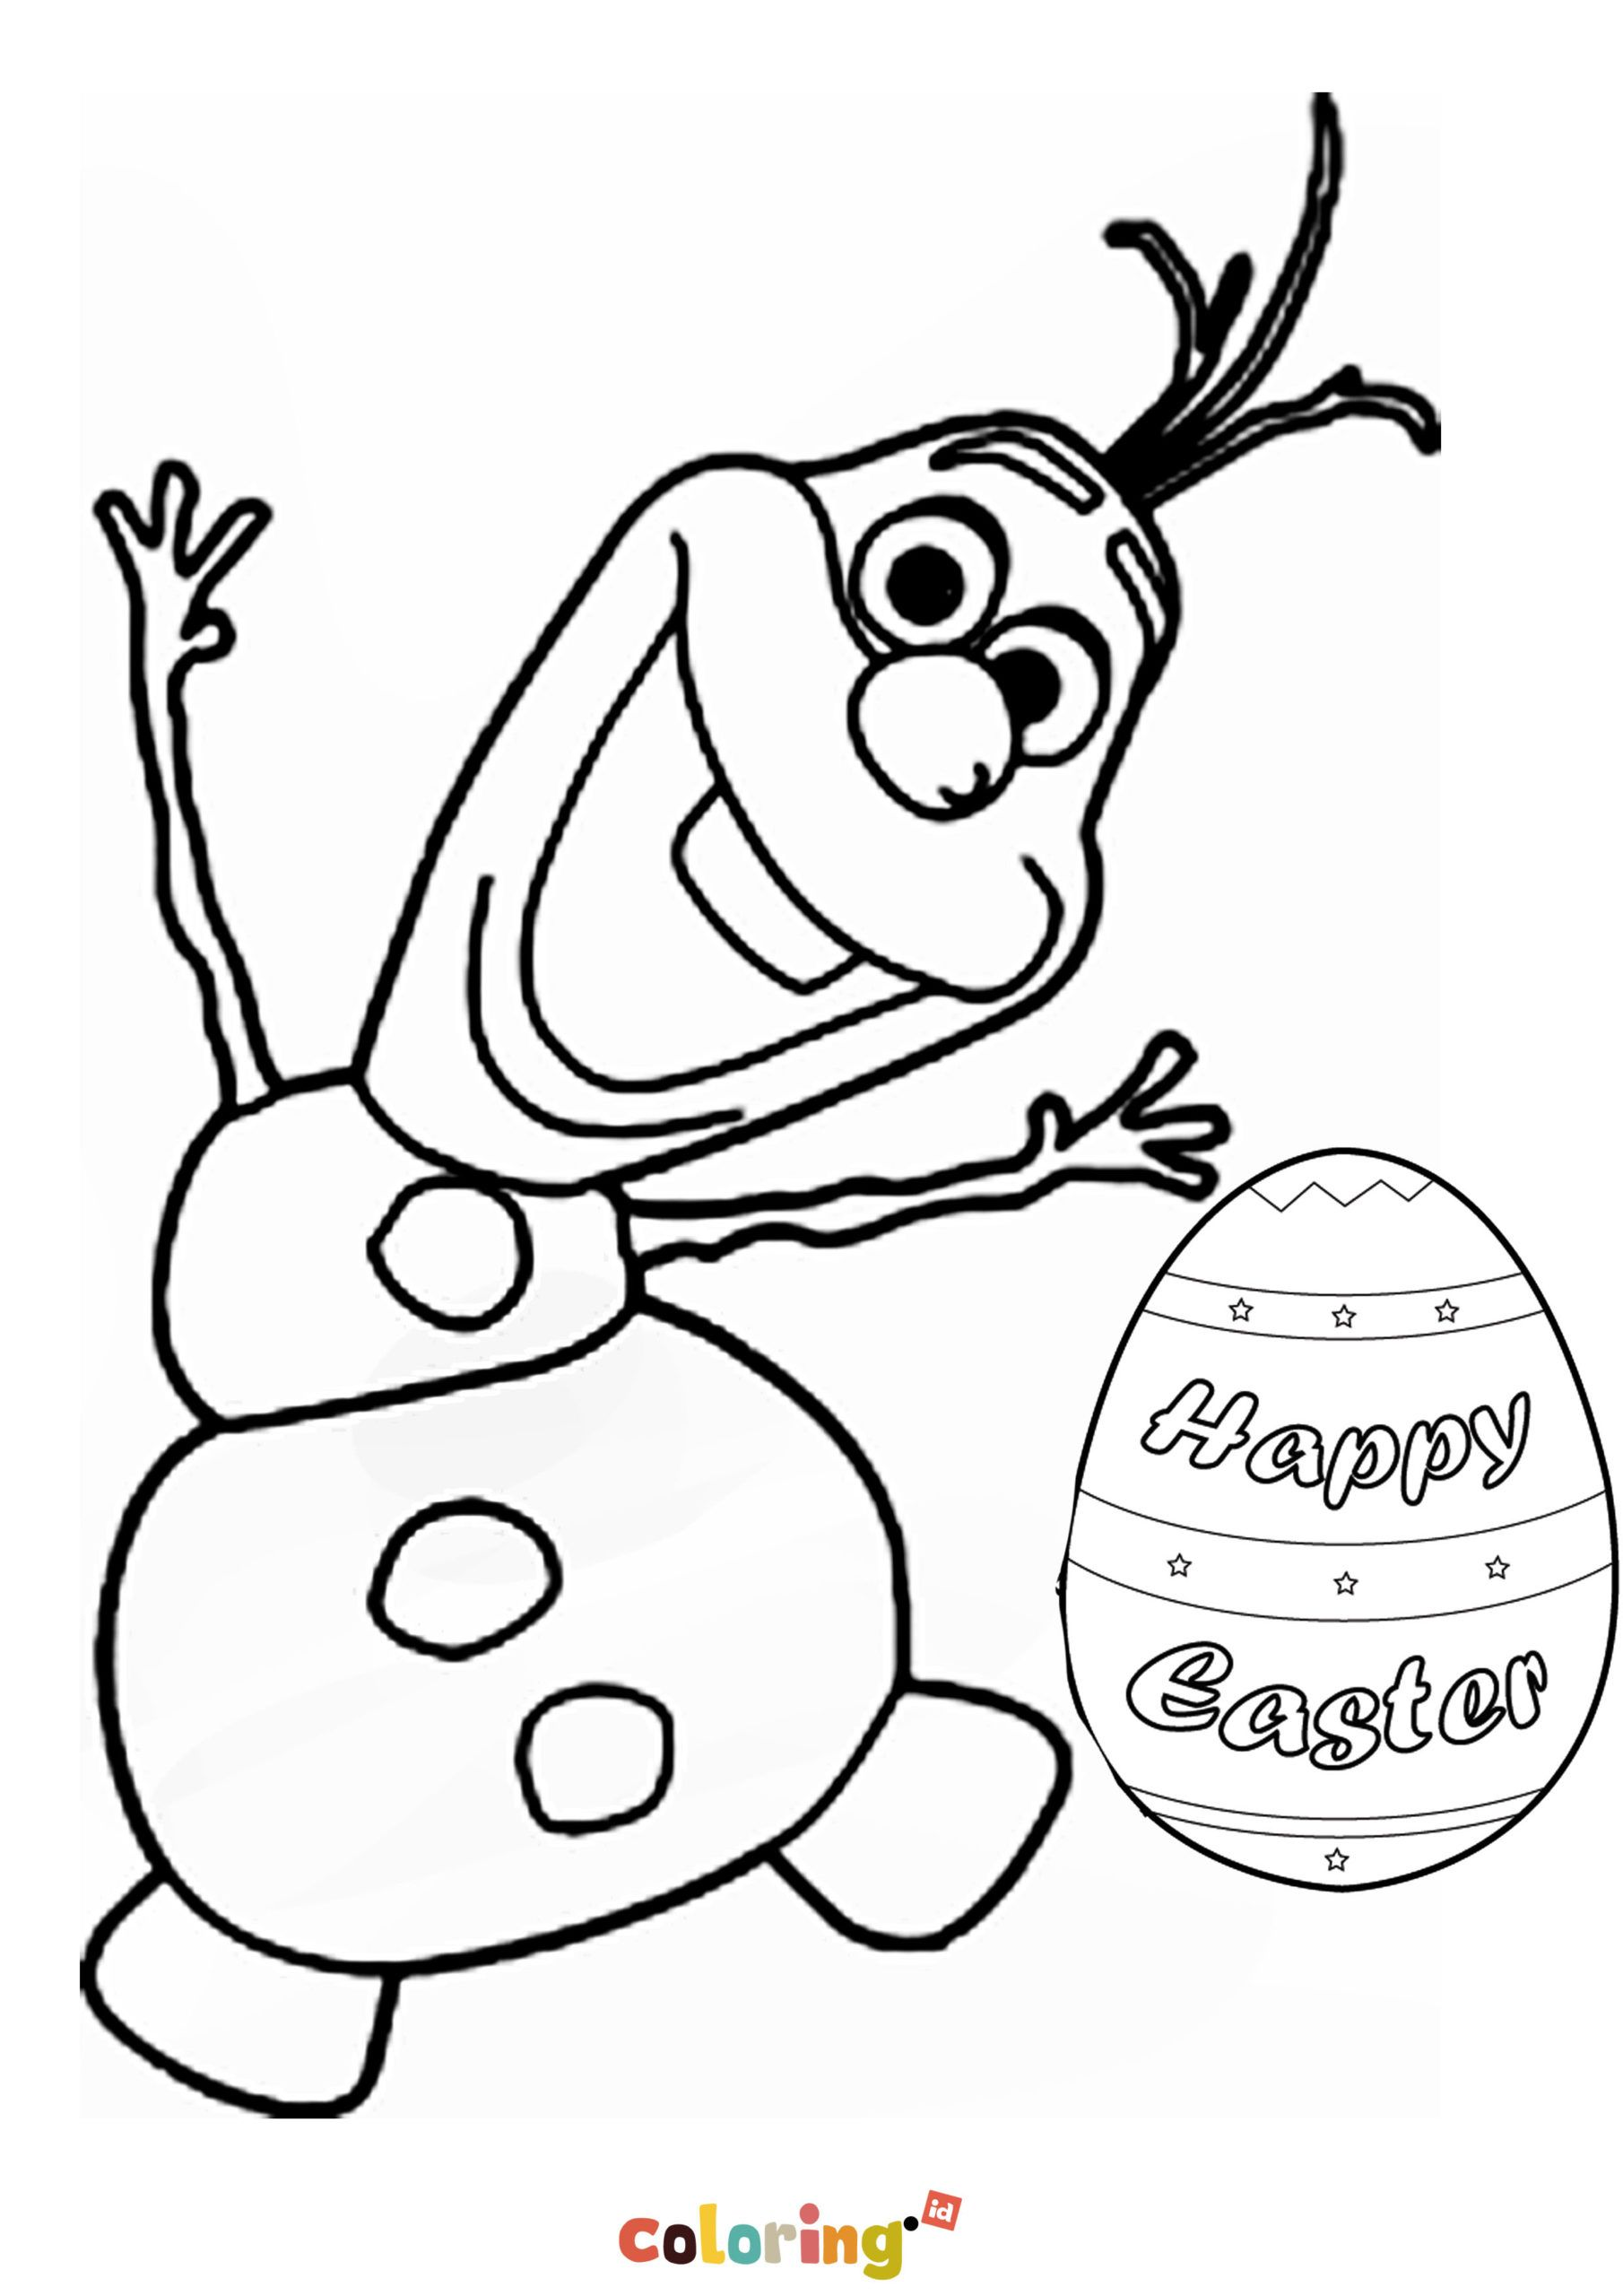 Olaf Happy Easter Egg Coloring Page Cartoon Coloring Pages Easter Egg Coloring Pages Coloring Pages